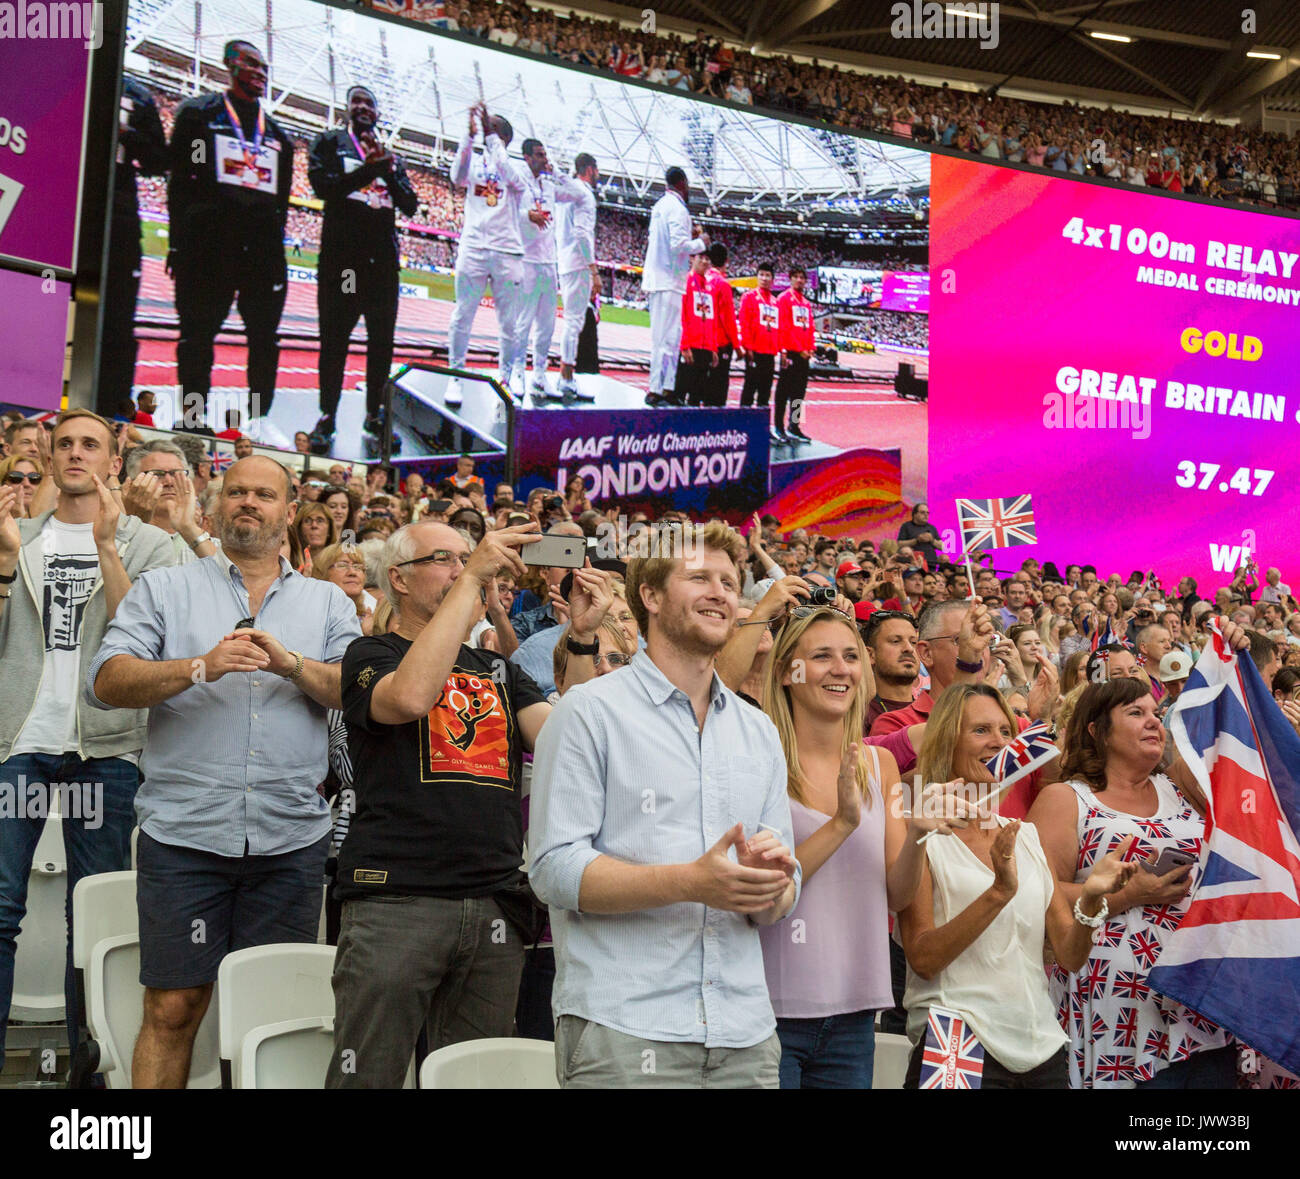 London, UK. 13th Aug, 2017. London, August 13 2017 . Fans cheer the British 4x100 team as they arrive for their gold medal ceremony on day ten of the IAAF London 2017 world Championships at the London Stadium. Credit: Paul Davey/Alamy Live News - Stock Image